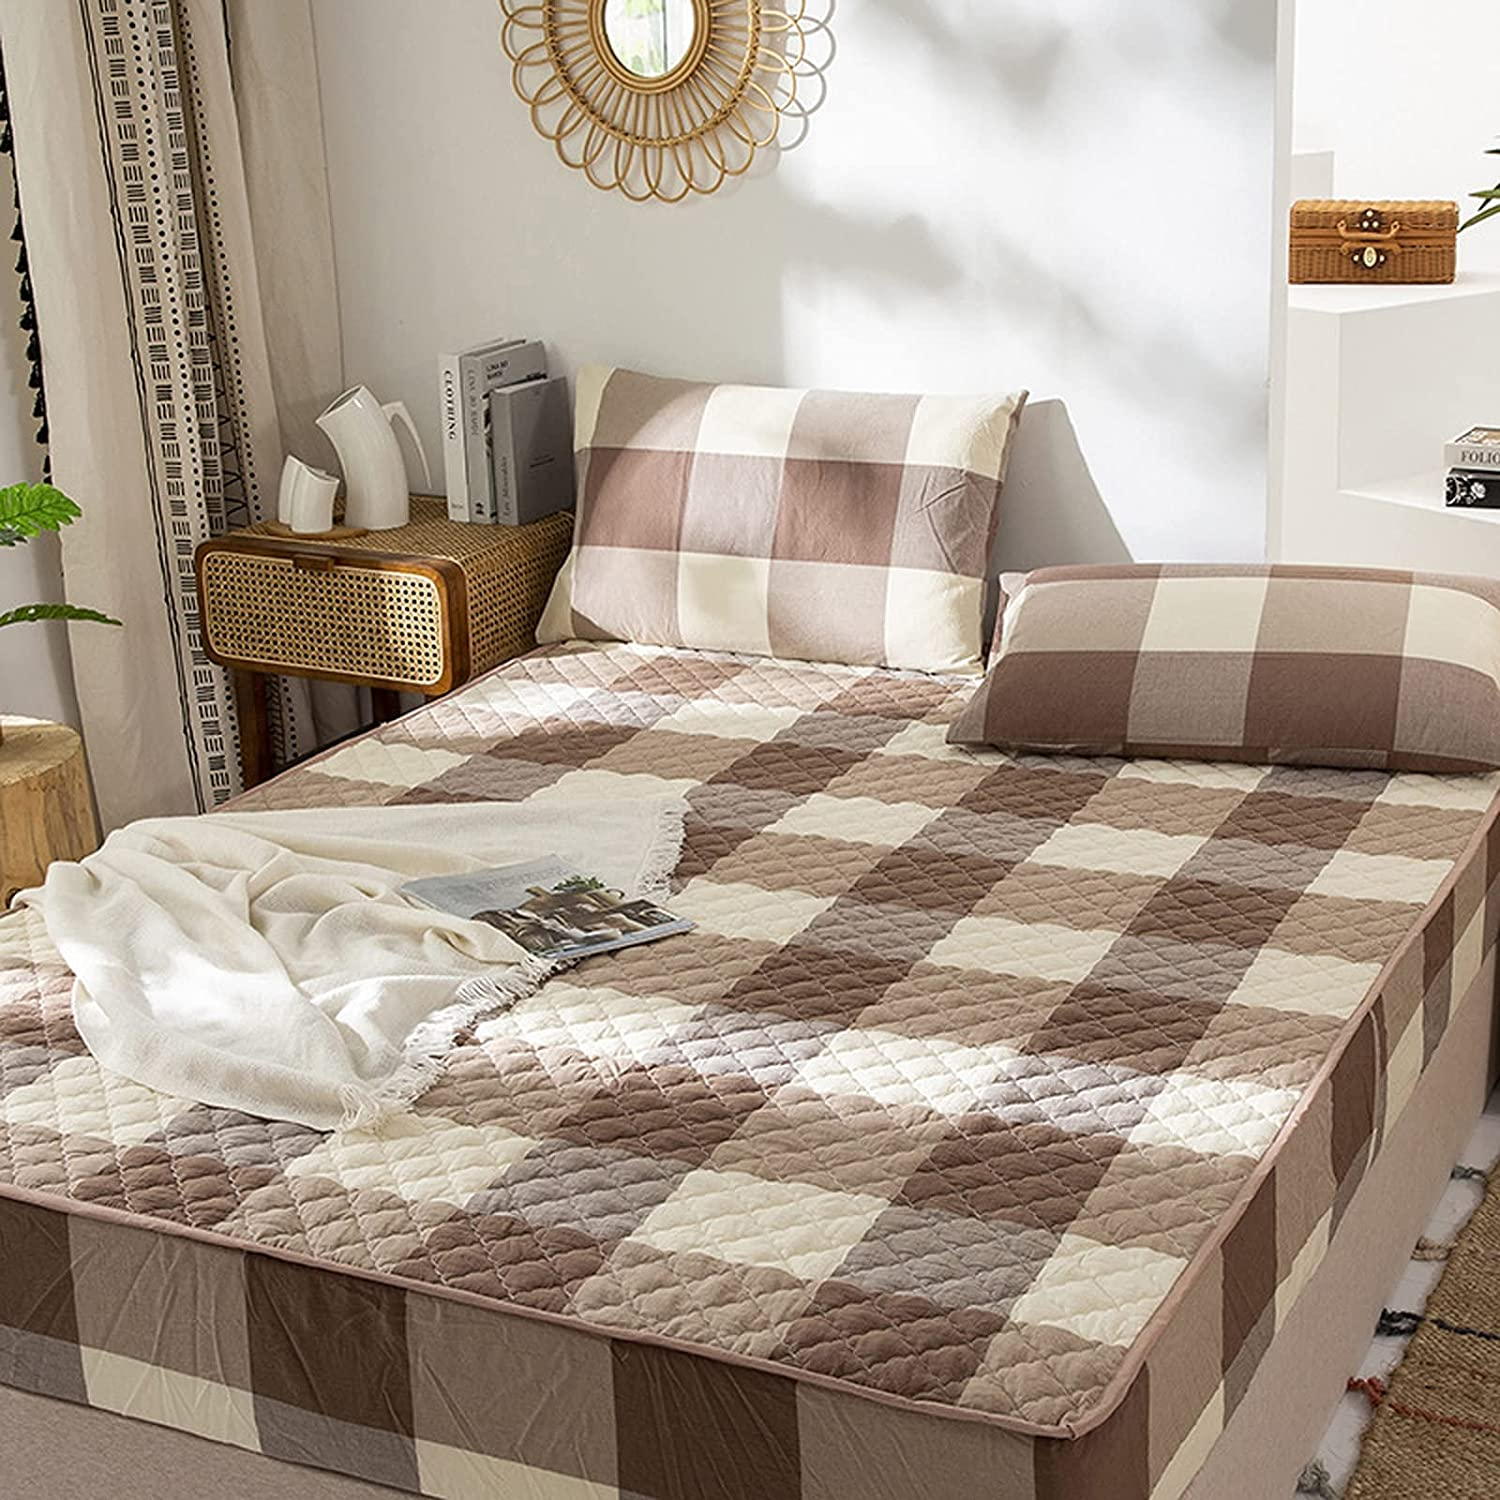 LTLJX Quilted Mattress Super Special SALE Max 70% OFF held Protector Fully Non Allergenic Do Fitted